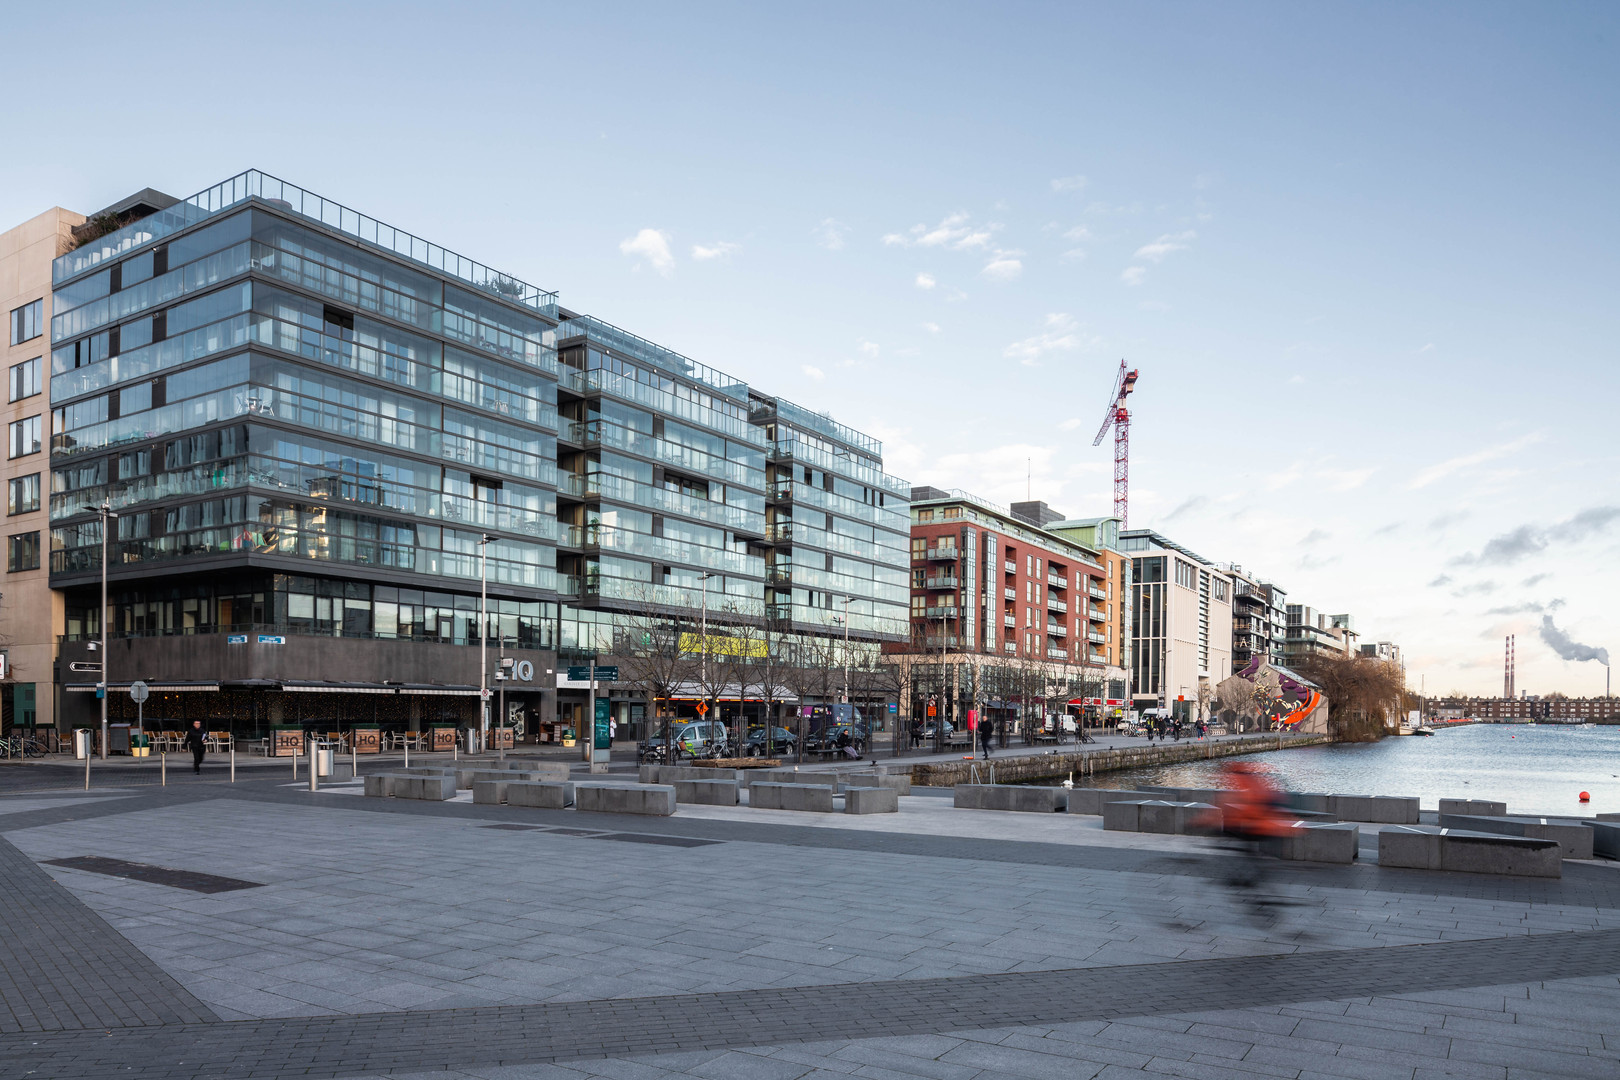 Hanover Quay from Grand Canal Square in Dublin